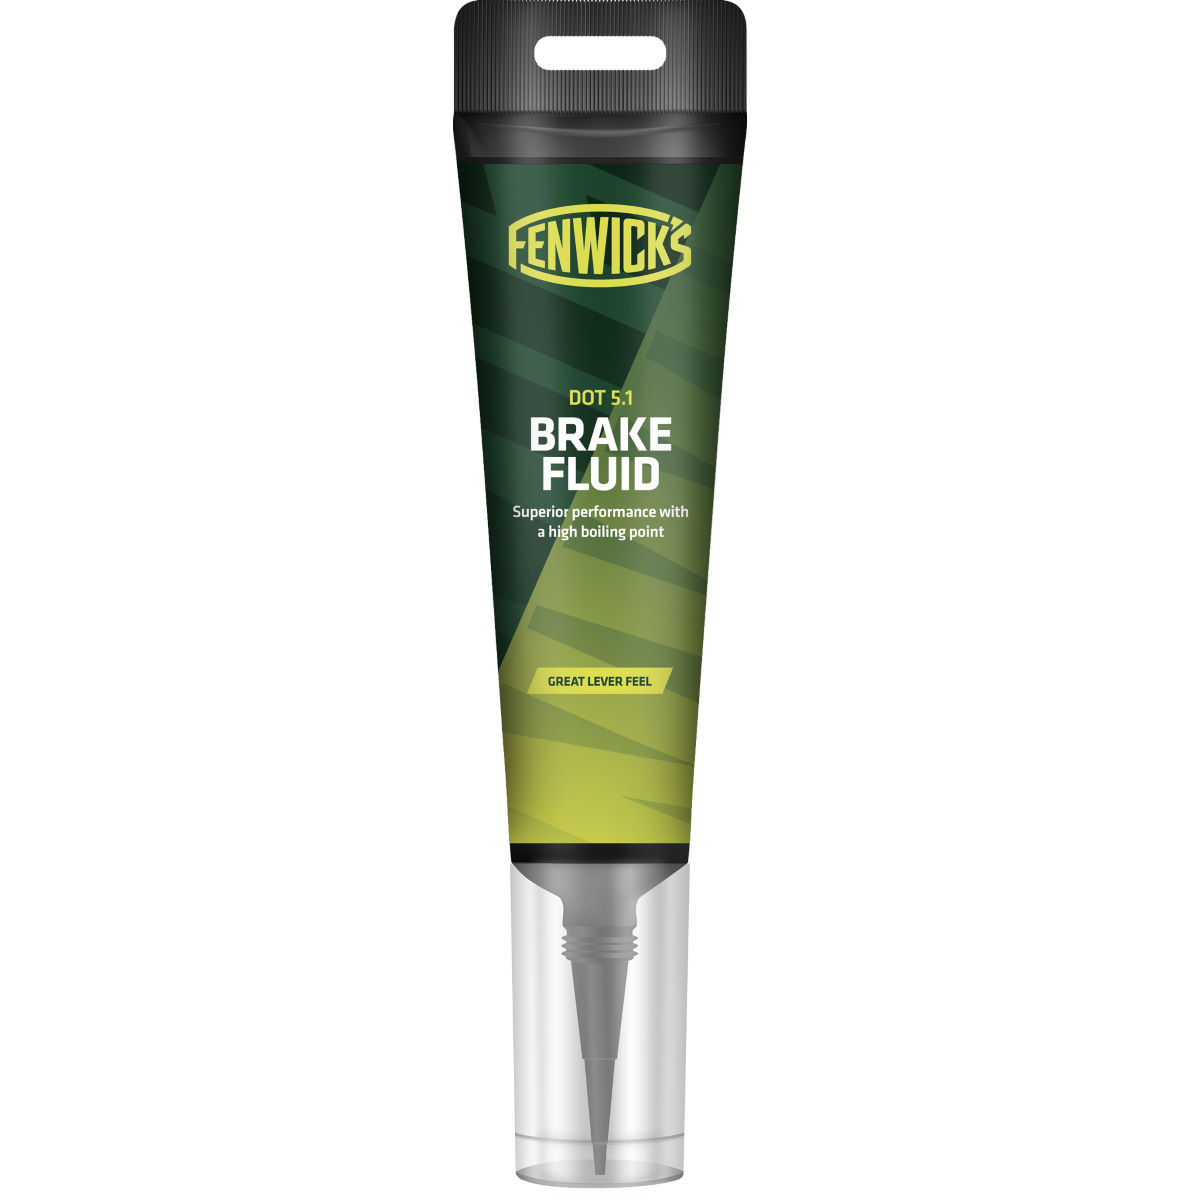 Fenwicks Dot 5.1 Brake Fluid - Lubricantes